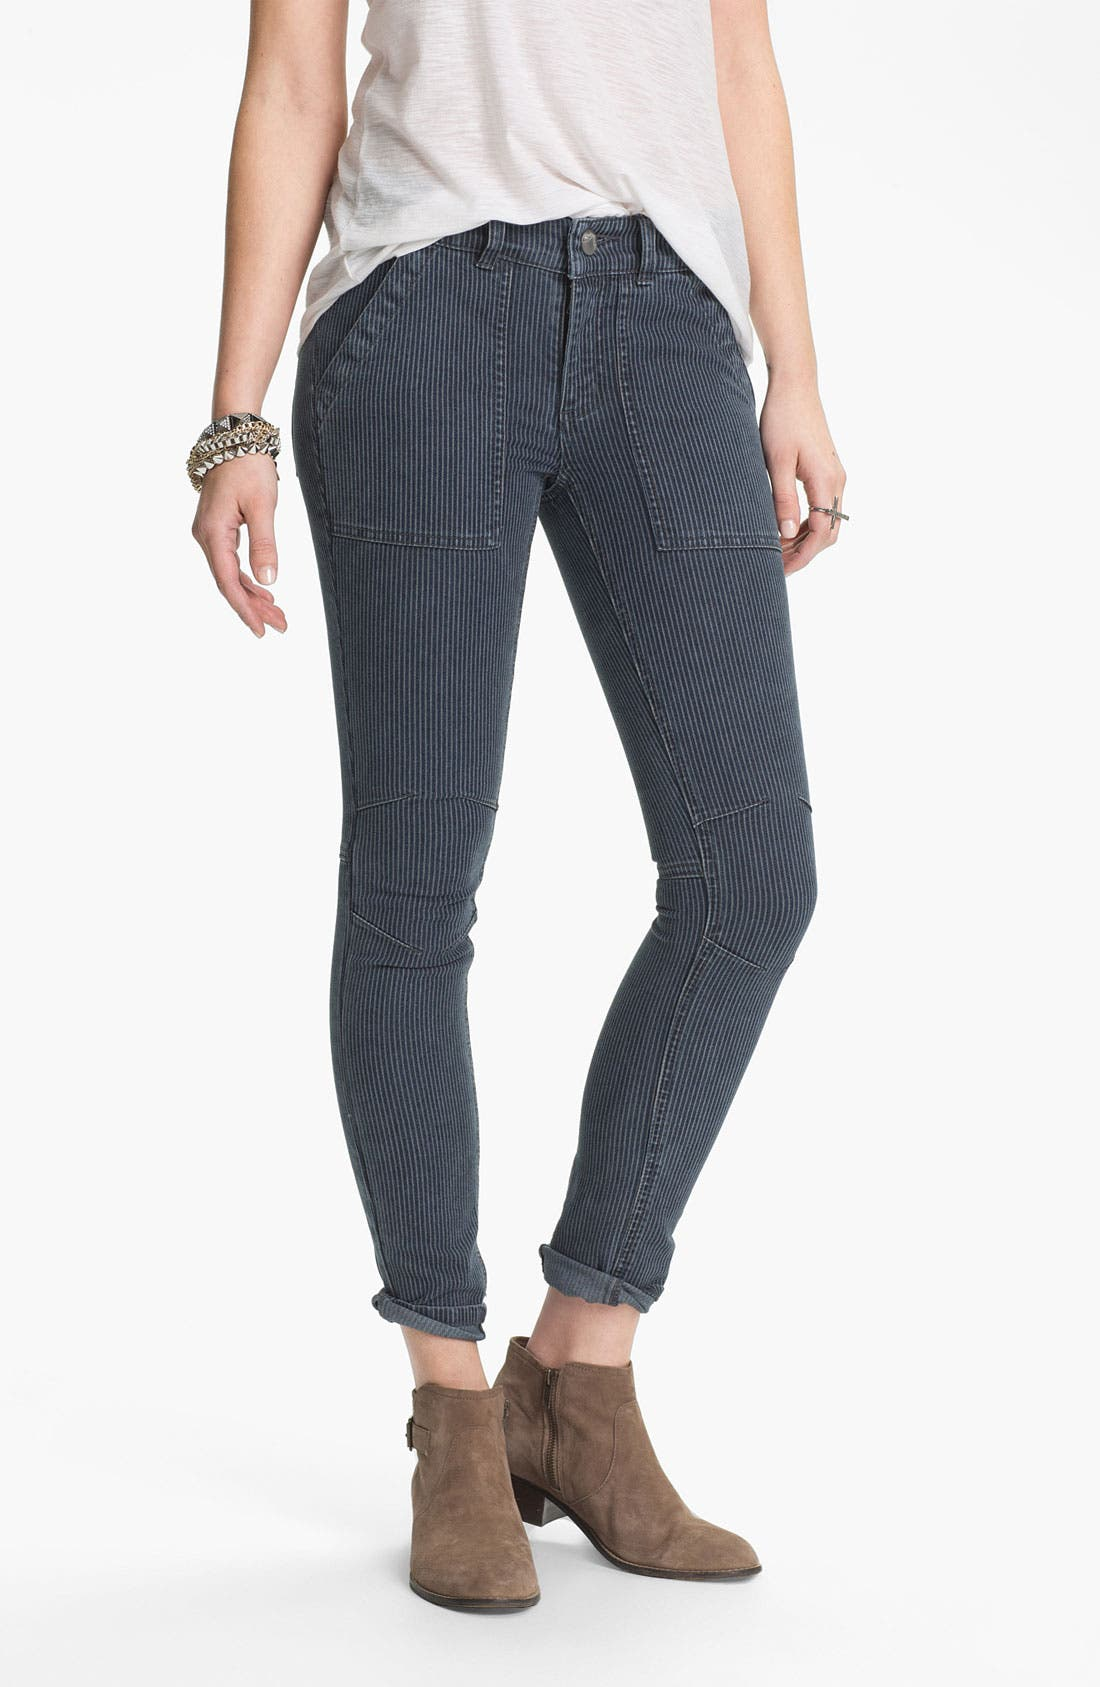 Alternate Image 1 Selected - Free People Railroad Stripe Skinny Utility Jeans (Washed Black)